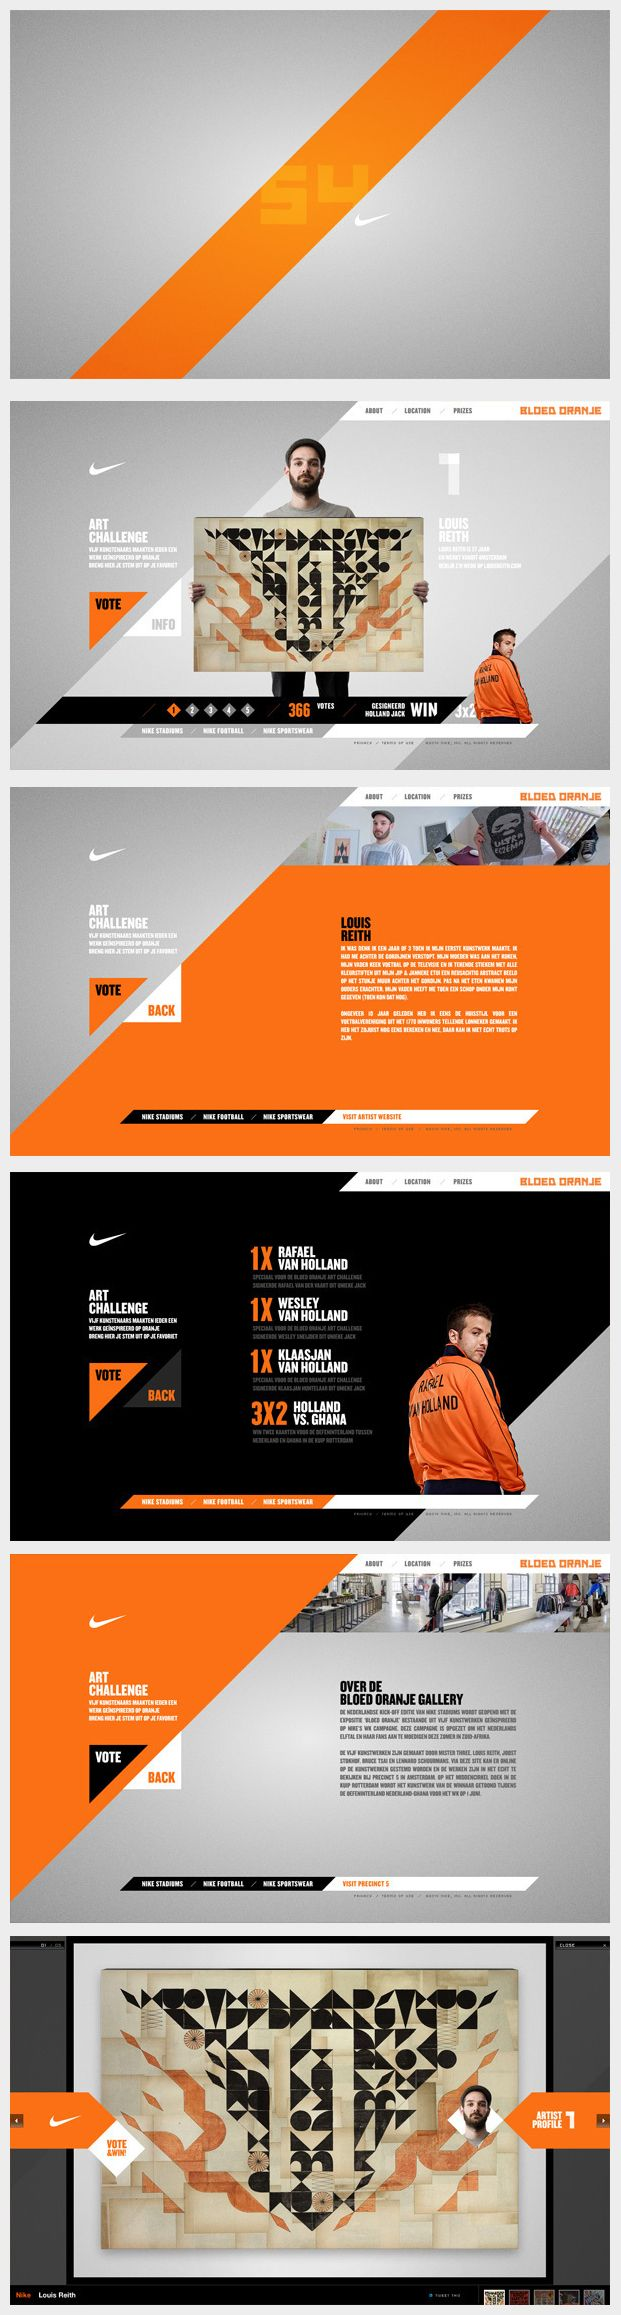 Nike website #webdesign #design #designer #inspiration #user #interface #ui